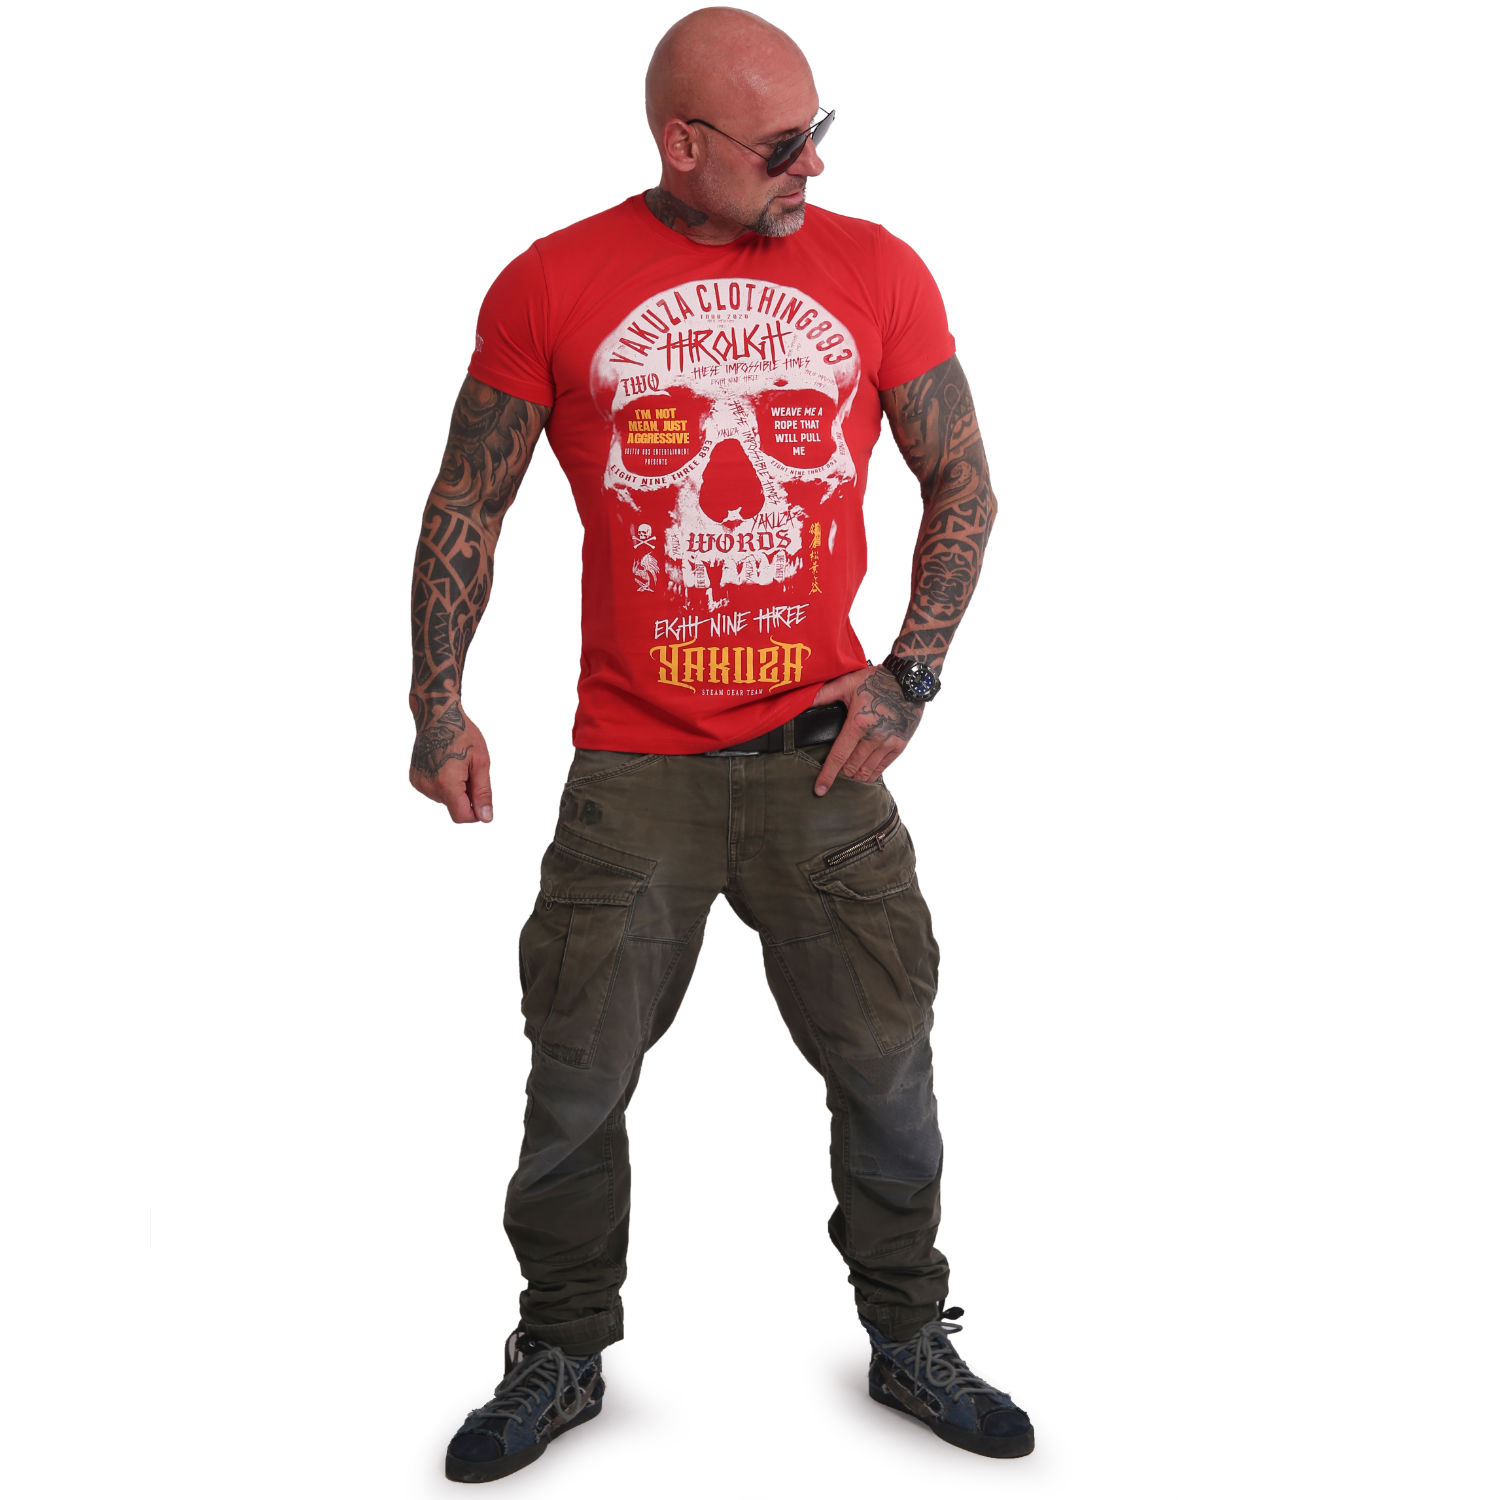 Through Skull T-Shirt